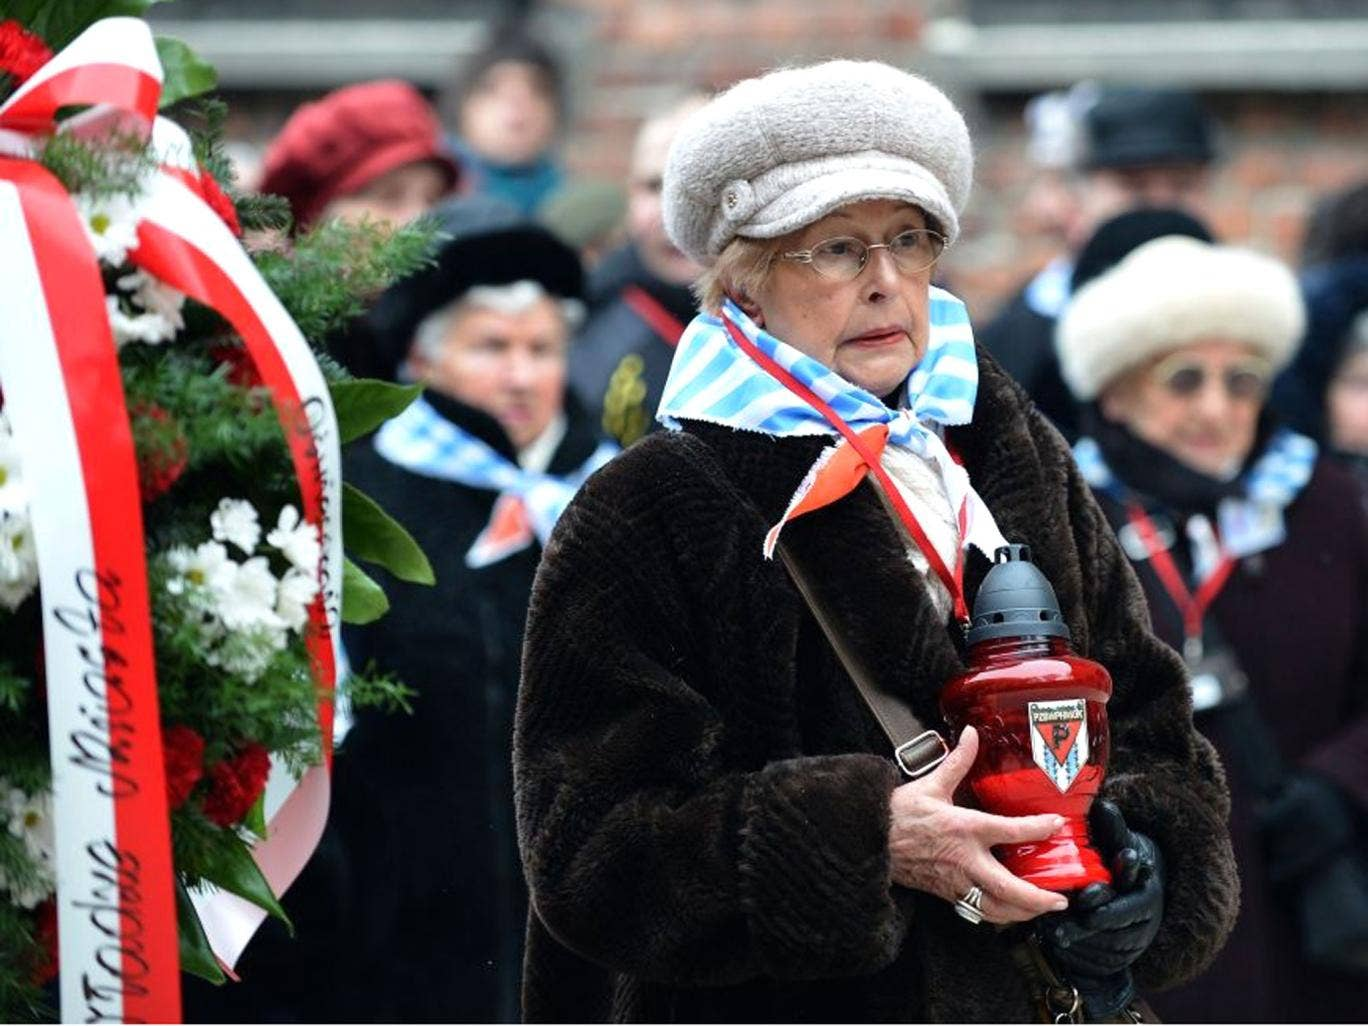 A ceremony at the memorial site of the former Nazi concentration camp Auschwitz-Birkenau in Oswiecim took place 69 years after the liberation of the death camp by Soviet troops, in remembrance of the victims of the Holocaust